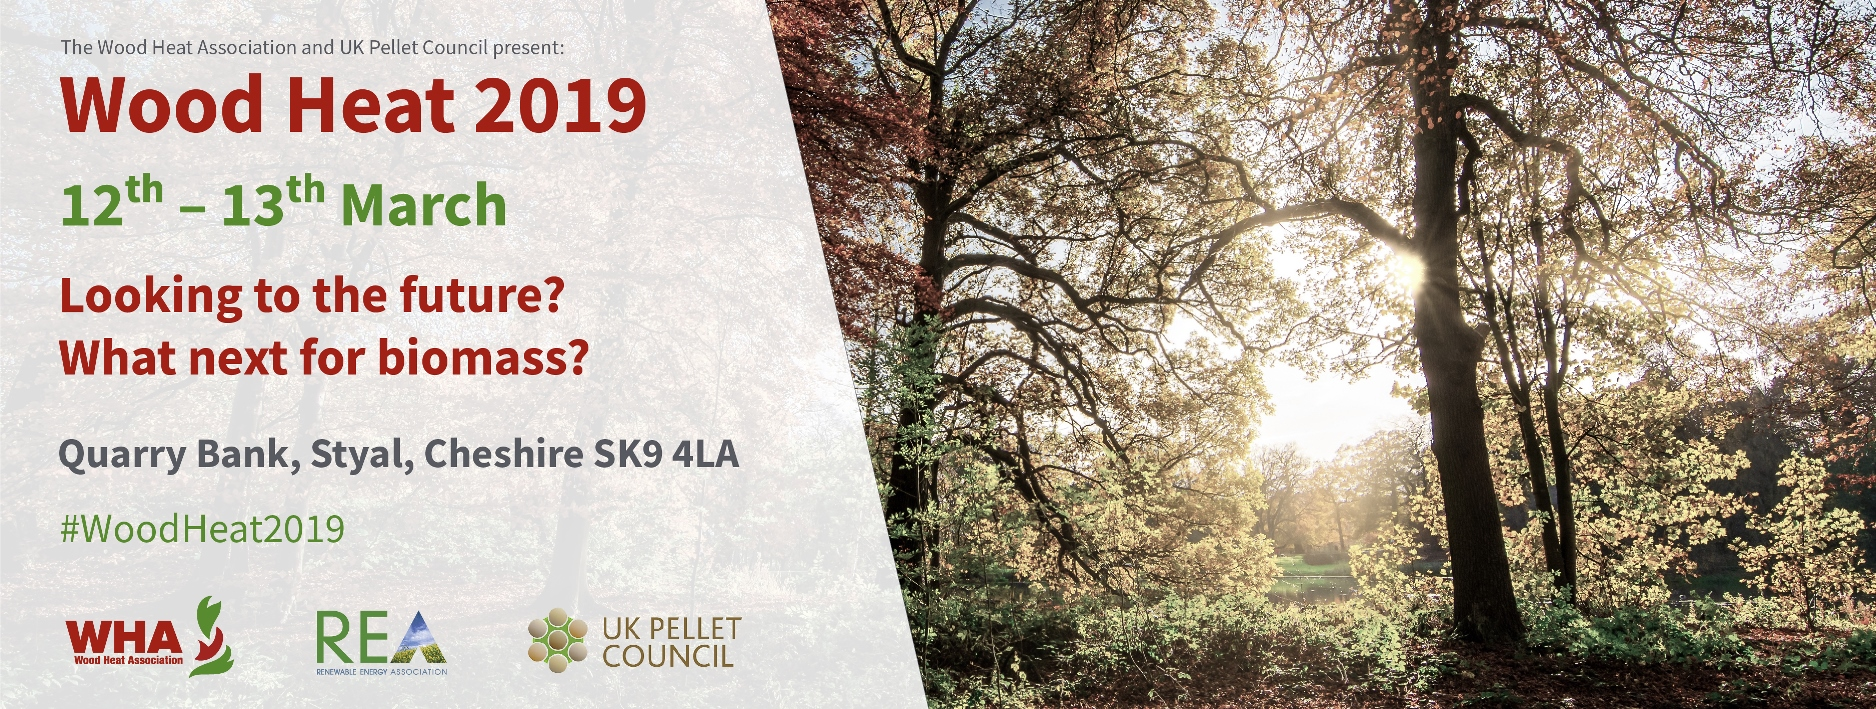 WHA & UK Pellet Council Conference 12th & 13th March 2019